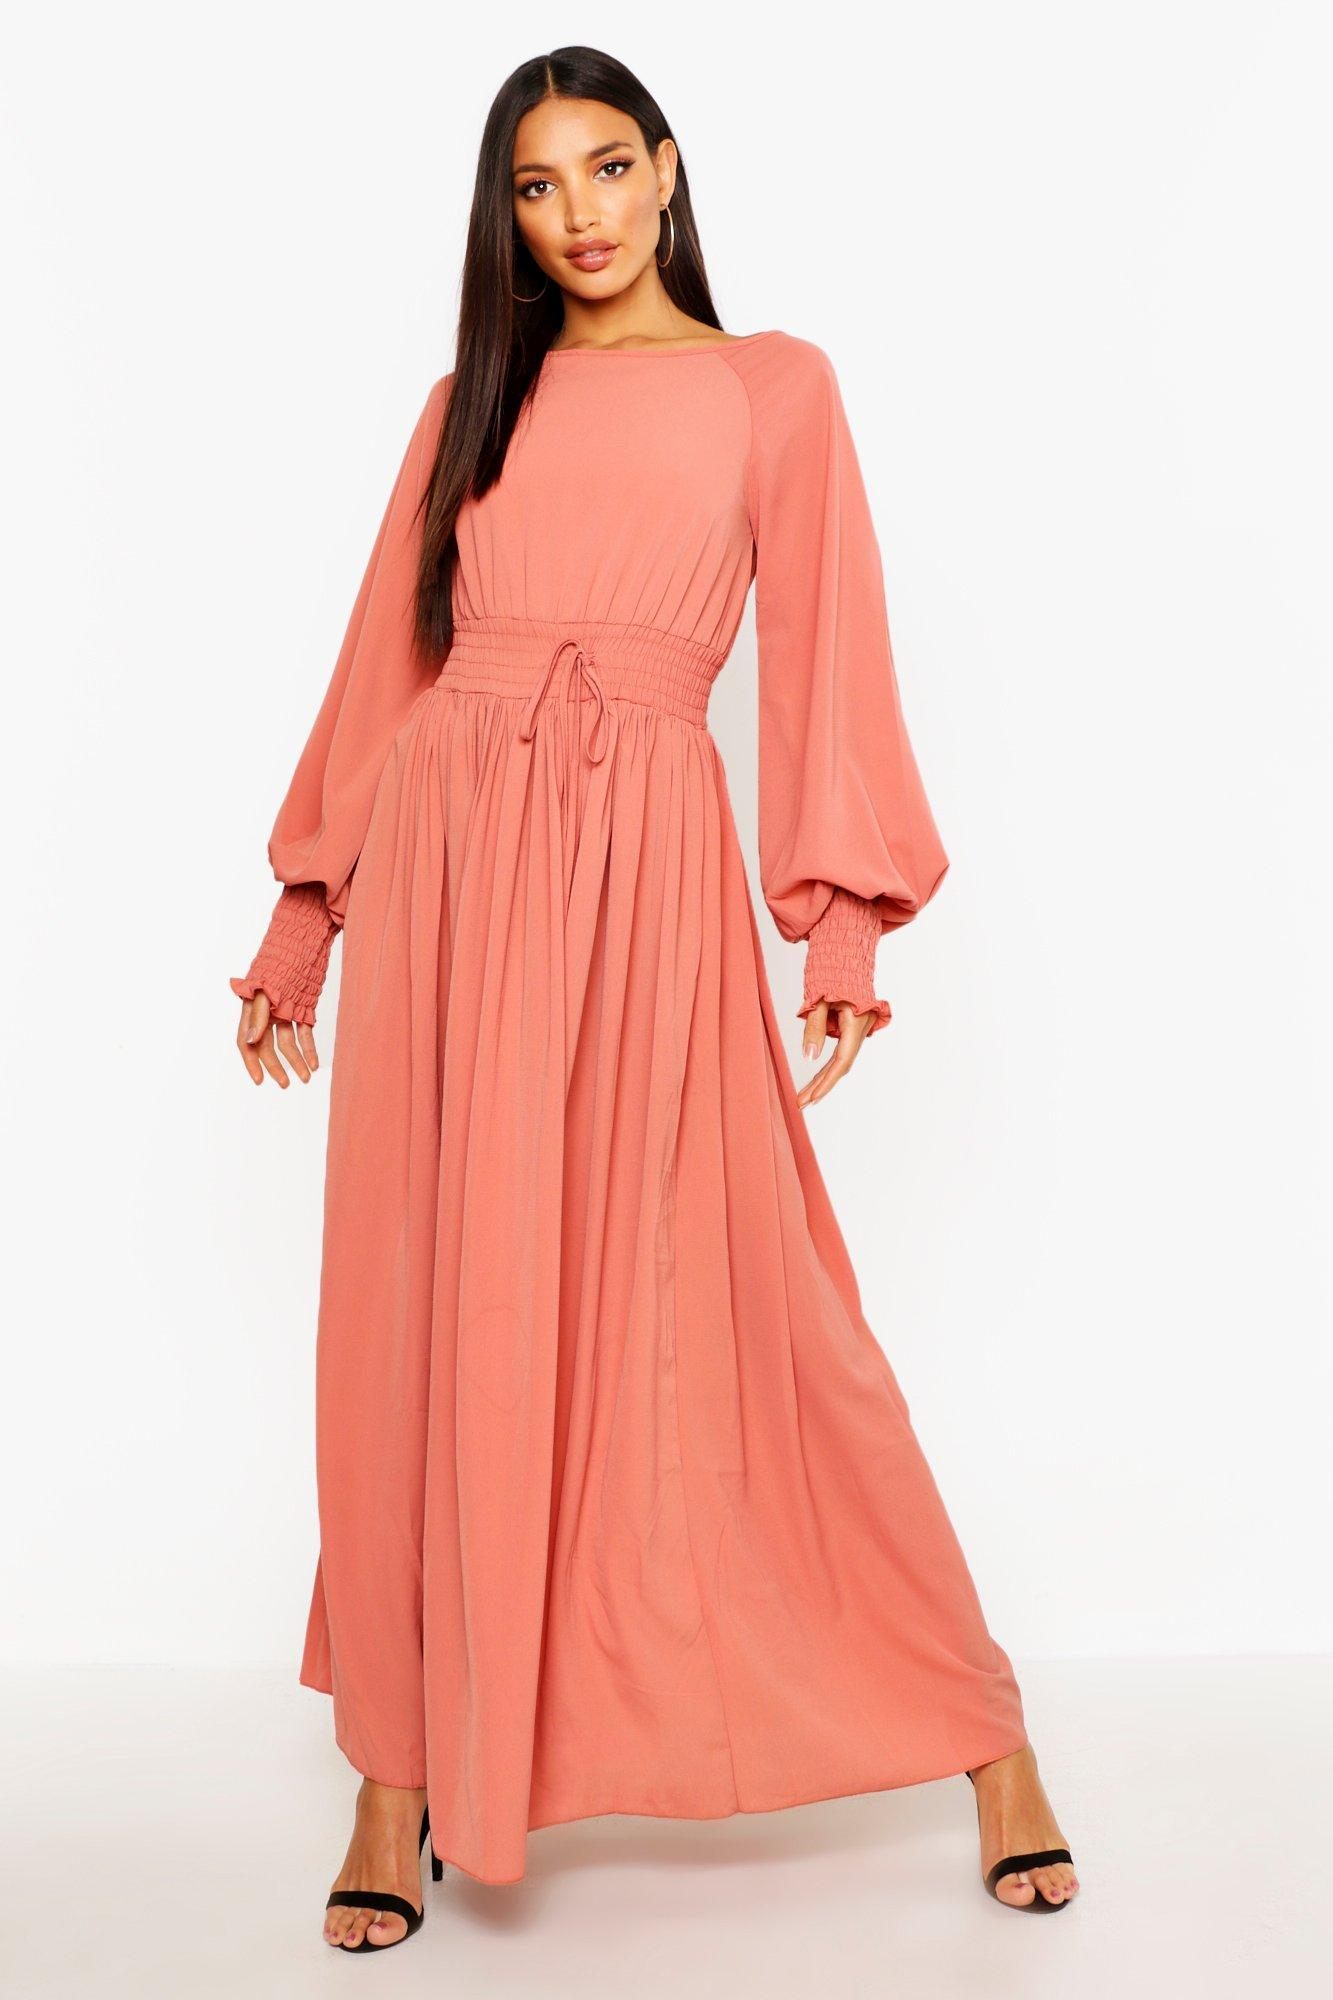 Vintage Style Dresses | Vintage Inspired Dresses Womens Shirred Waist  Cuff Woven Maxi Dress - Pink - 12 $38.00 AT vintagedancer.com